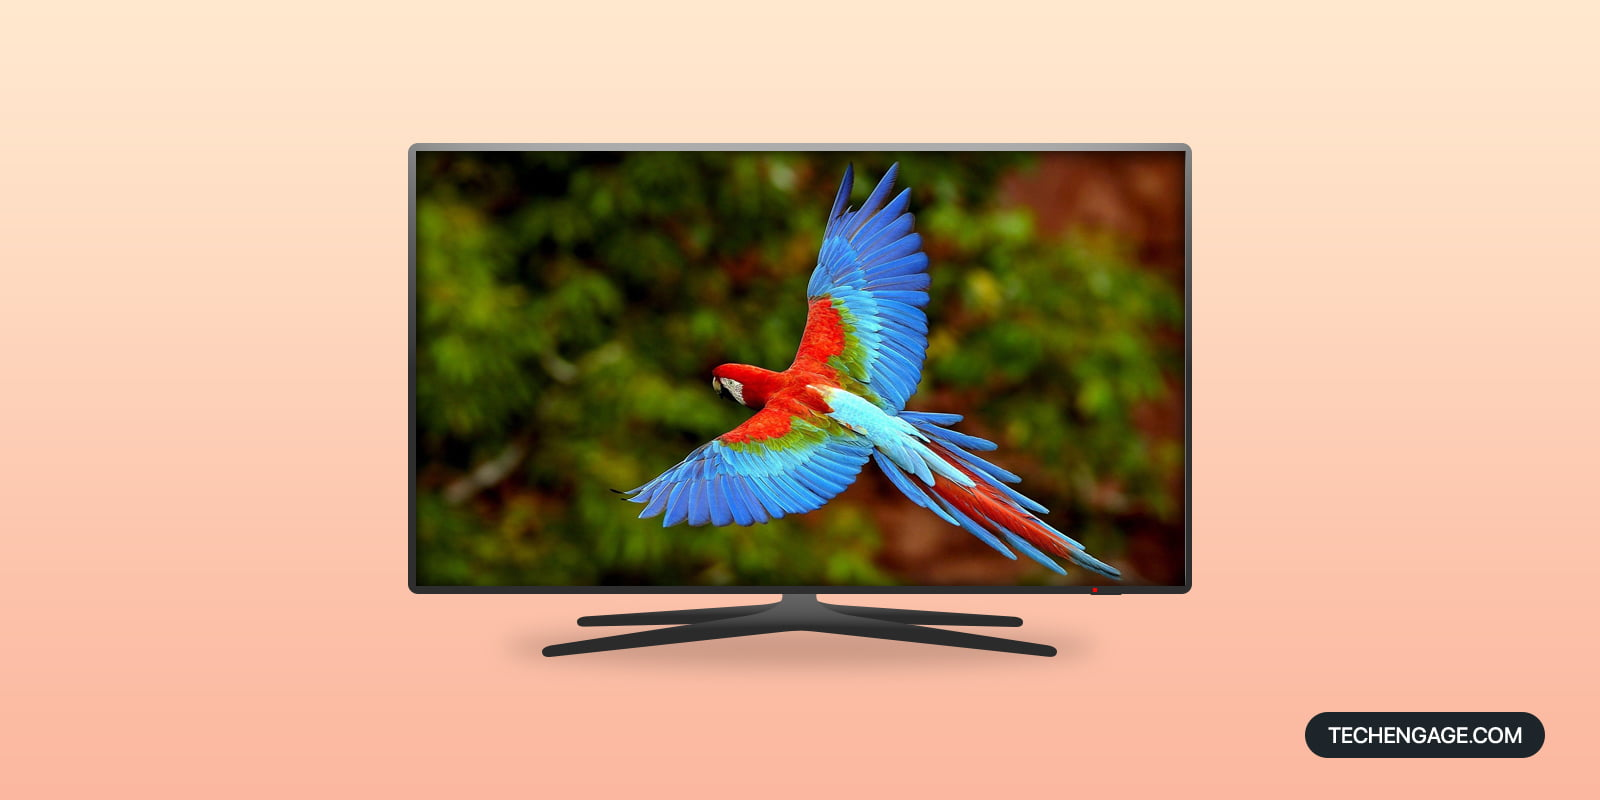 Best 4K TVs for Outdoor Use on Amazon for 2021